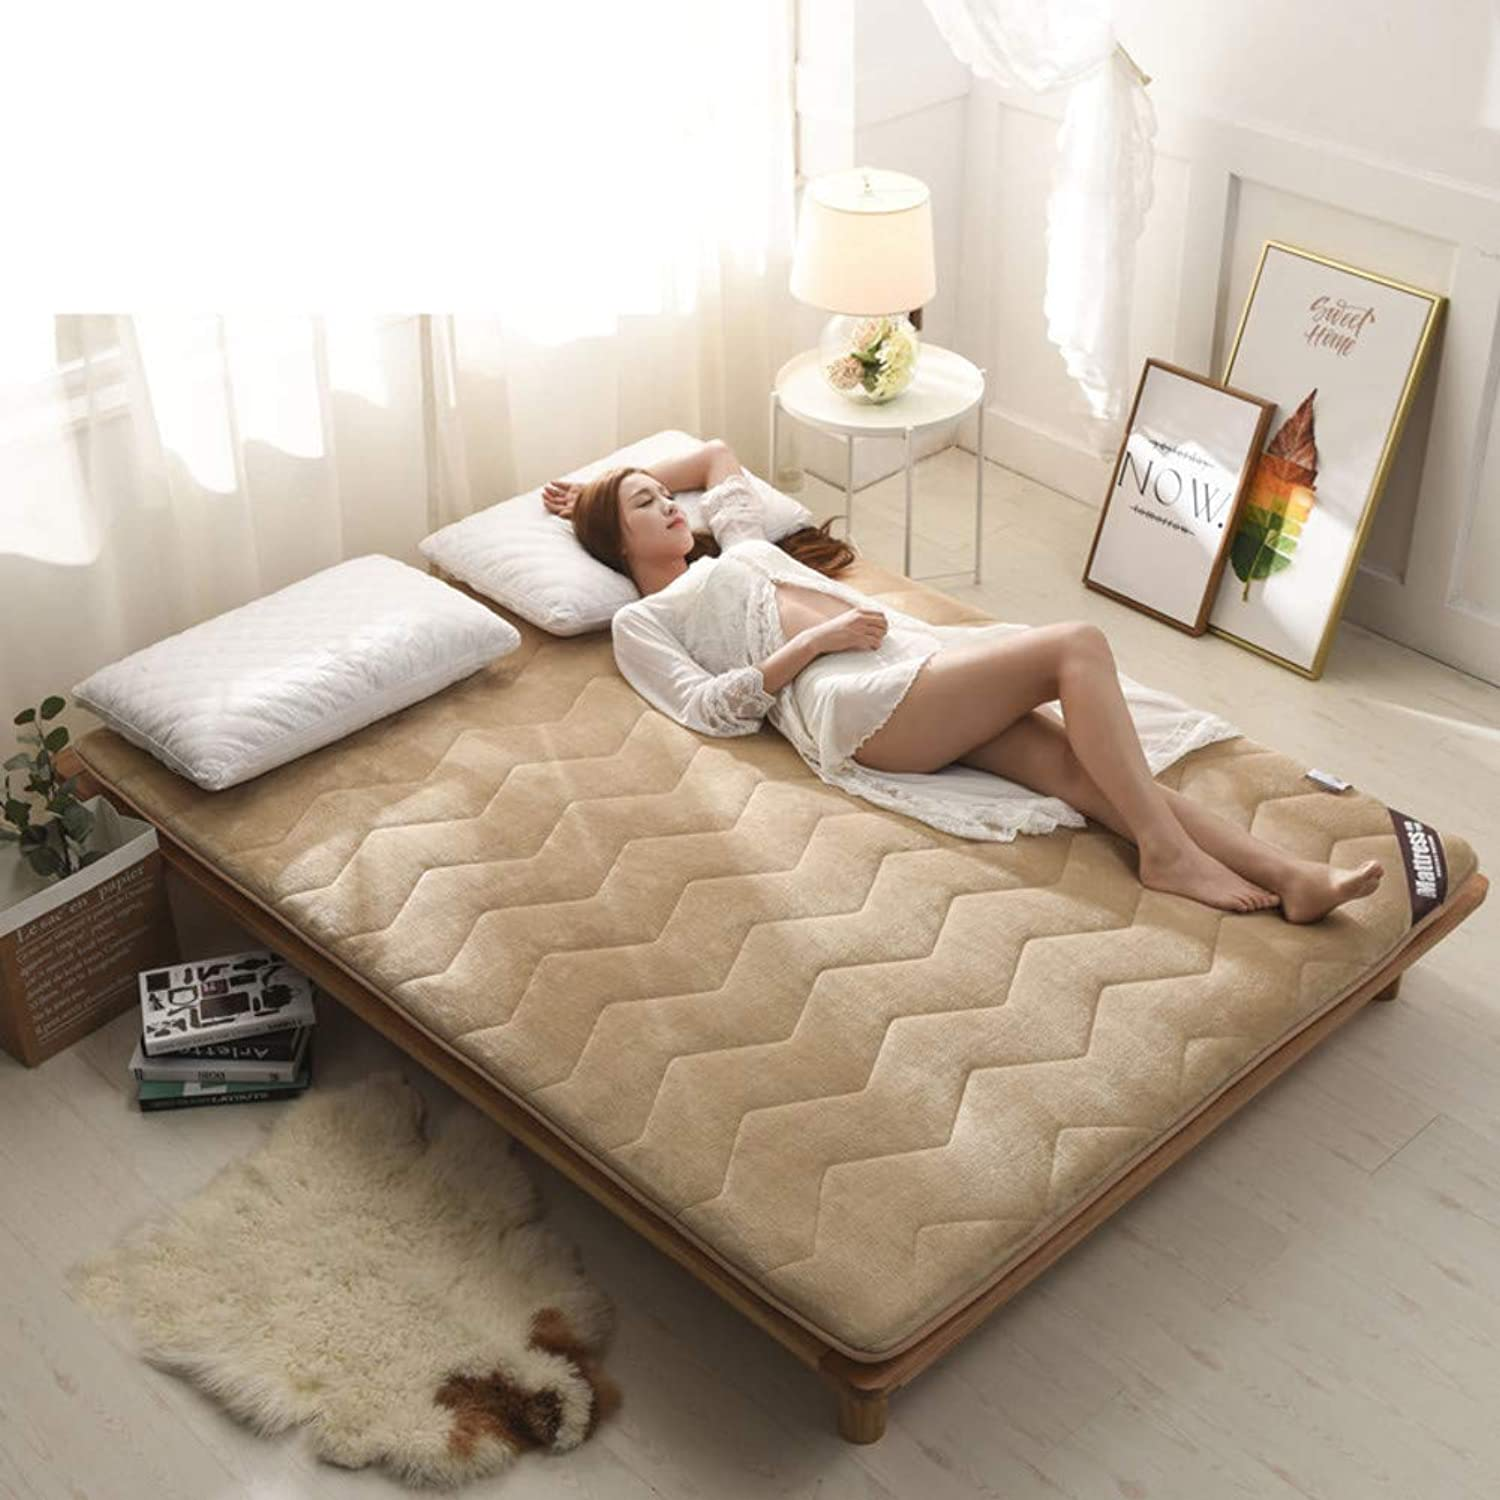 Thickened Mattress,Tatami Floor mat Keep Warm Non-Slip Mattress pad Cover Twin Full Queen King-B 150x190cm(59x75inch)